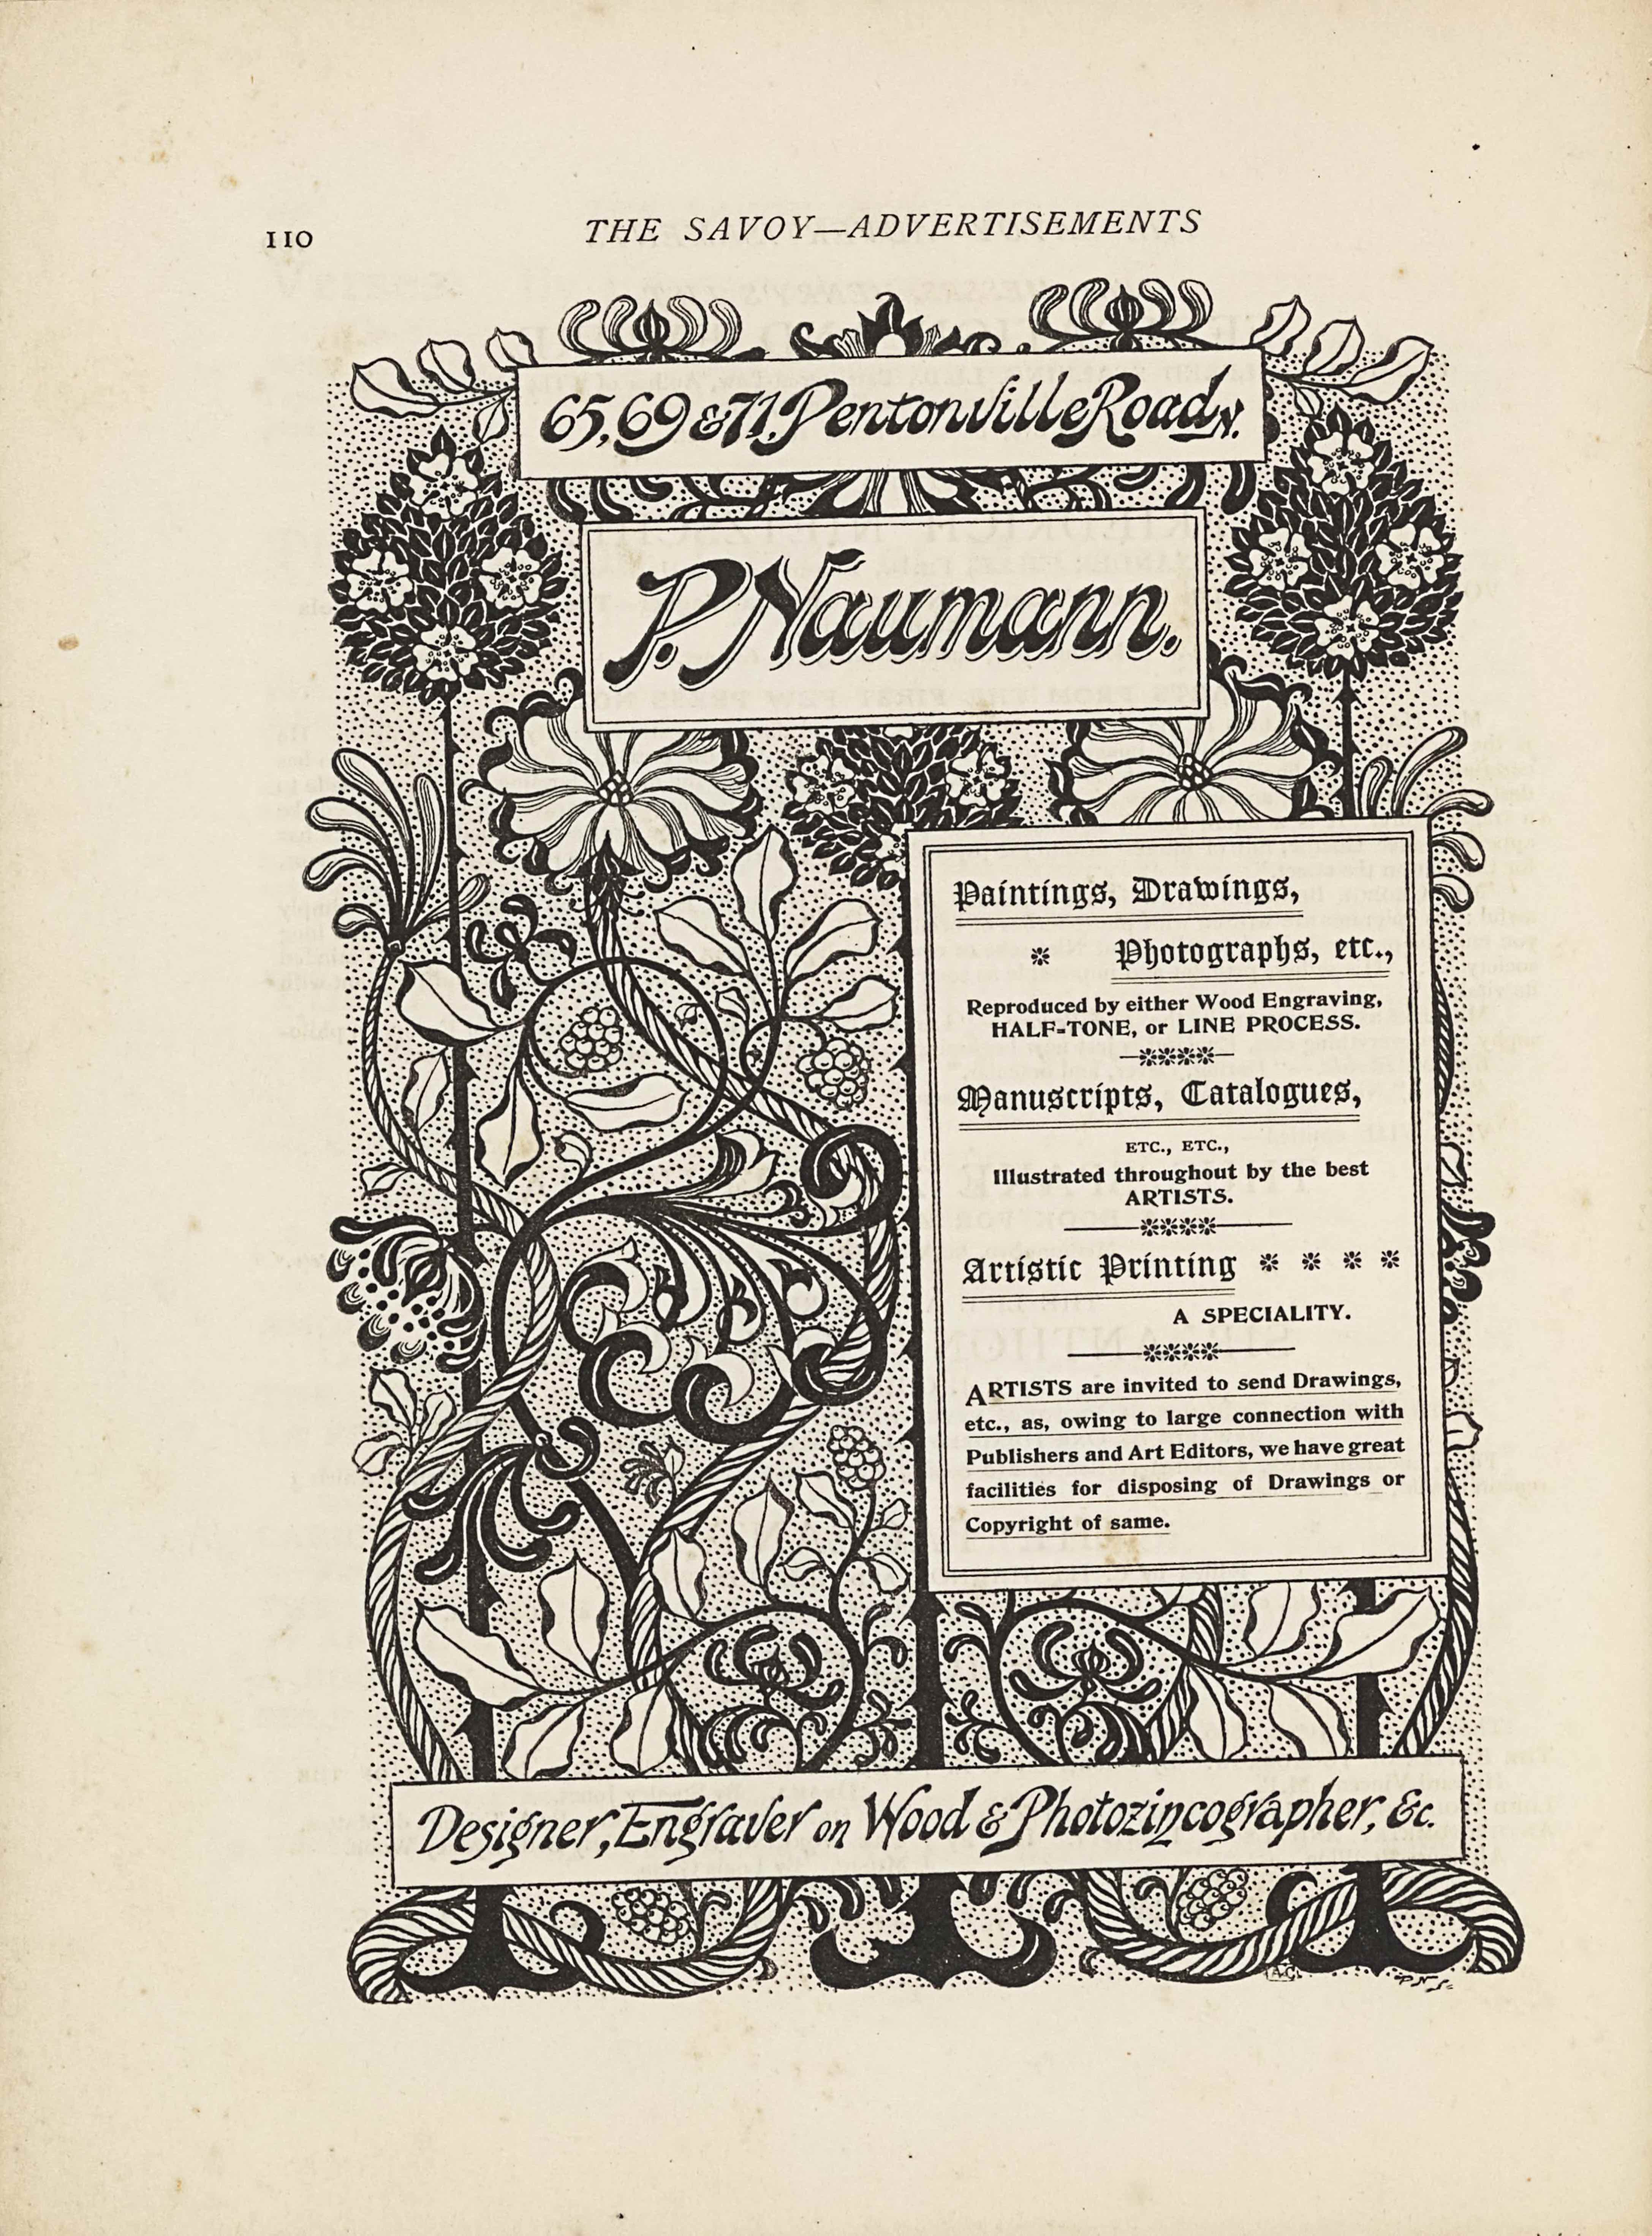 """The image is in portrait orientation. The image is an advertisement for Paul Naumann's services and shows four boxes of textual publishing information with a floral design behind the boxes. At the bottom edge of the page are the roots of the flowers that extend up to the top edge. There are three roots based at the bottom edge. The roots are evenly spaced out across the width of the page. The roots appear as curled horizontal lines cut through in the middle with straight vertical lines. The roots and flower stalks are all dark coloured. Around the roots at the bottom edge is a looping piece of vine that looks like rope. The vines then extend up vertically and wrap around the two exterior flowers all the way up the page. There is a bunch of berries in the middle two spaces between the flower stalks. Slightly up the page from the bottom edge is a long rectangular text box. In the single-edge box is the text: """"Designer, Engraver on Wood & Photozincographer, &c."""" The text is italicized and black on a white background. Above the box in the background is the flower stalks and vines, with two branches of leaves extending out horizontally. Slightly above and only on the right half of the page is another text box. This box is tall and rectangular, with a double-edged border. The box contains the text: """"Paintings, Drawings, // Photographs, etc., // Reproduced by either Wood Engraving, // HALF-TONE, [caps] or LINE PROCESS. [caps] // Manuscripts, Catalogues, // ETC., ETC., // Illustrated throughout by the best // ARTISTS. [caps] // Artistic Printing // A SPECIALTY. [caps] // ARTISTS [caps] are invited to send Drawings, // etc., as, owing to large connection with // Publishers and Art Editors, we have great // facilities for disposing of Drawings or // Copyright of same."""" Just above this text box is where the flowers bloom out from their stalks. The three flowers from the dark roots are dark ovals of leaves with four white daffodil flowers evenly populated. The two flowers from """